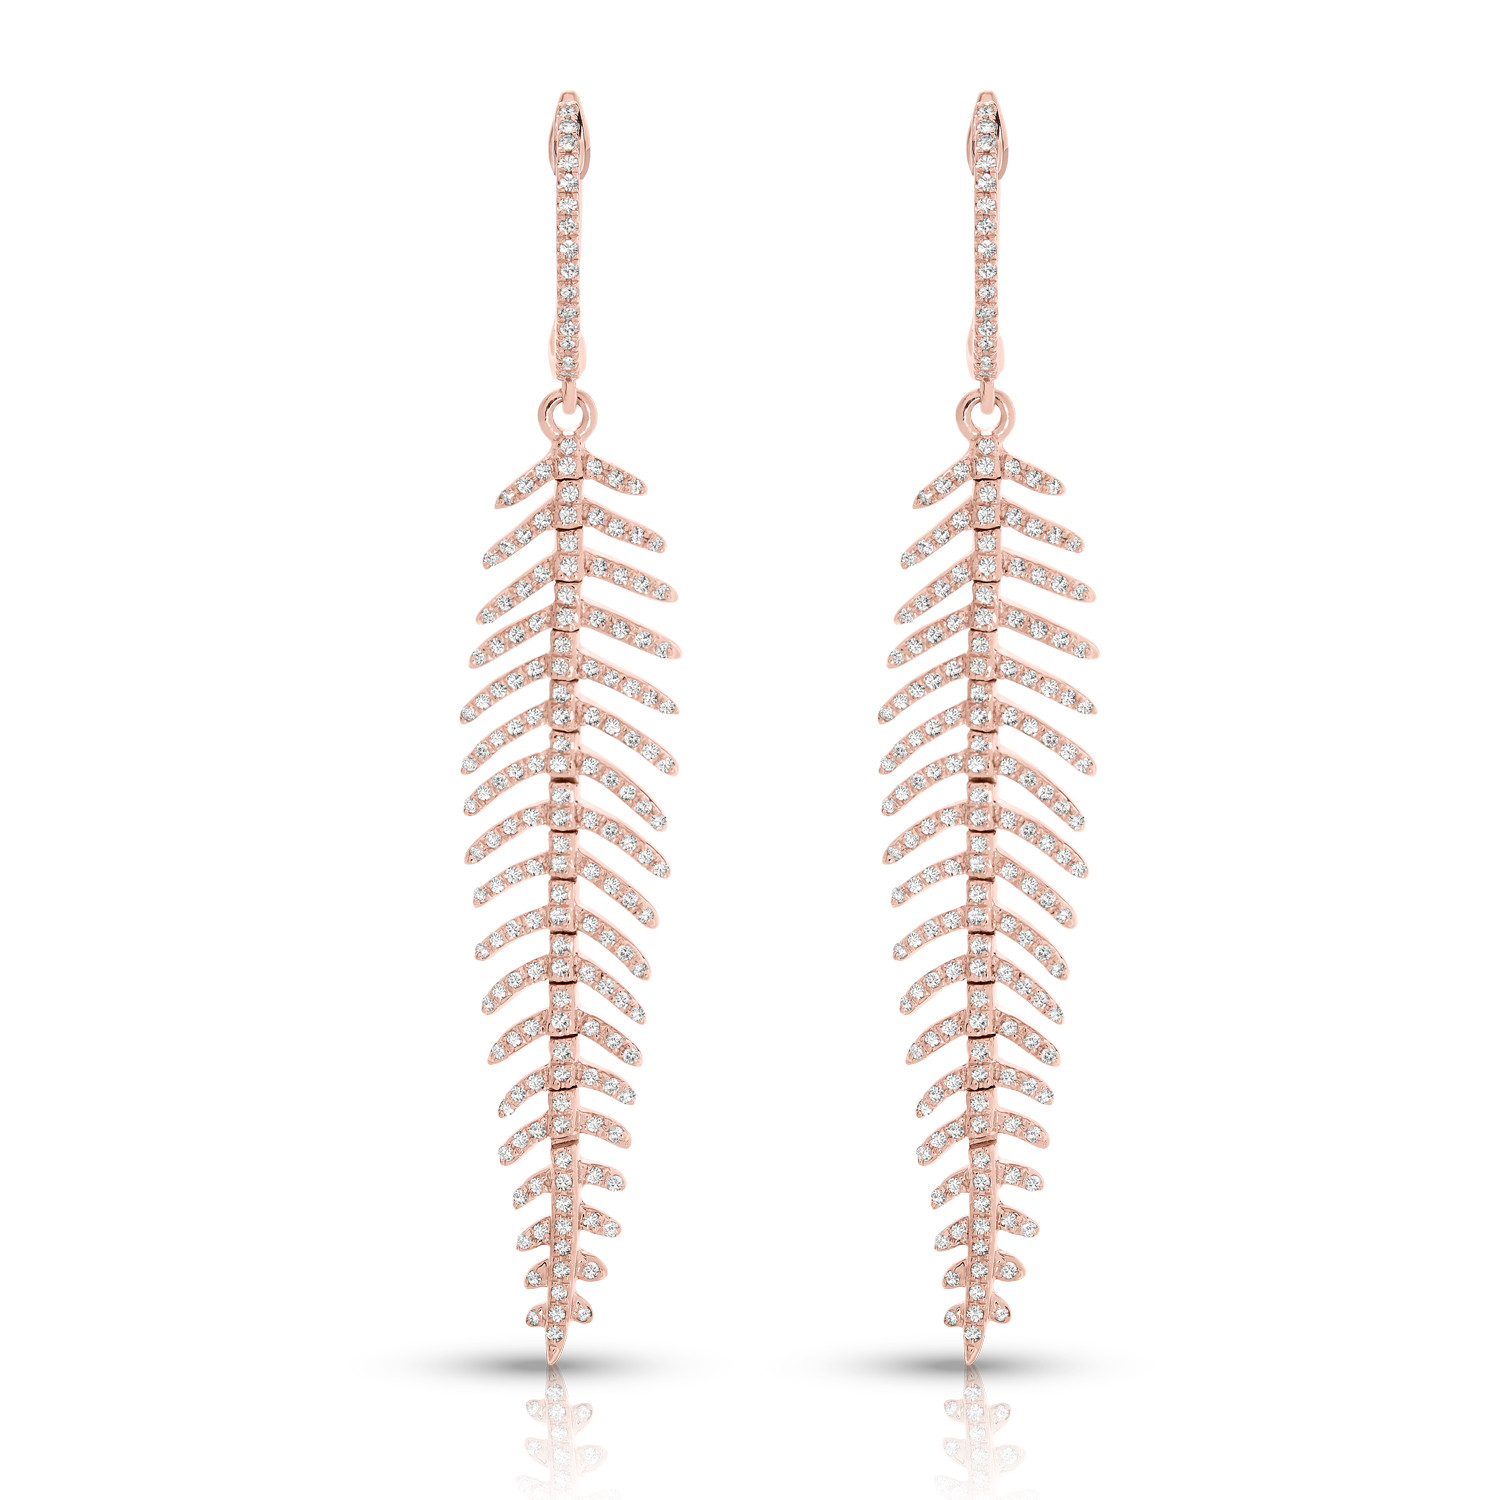 14KT ROSE DIA EARRINGS